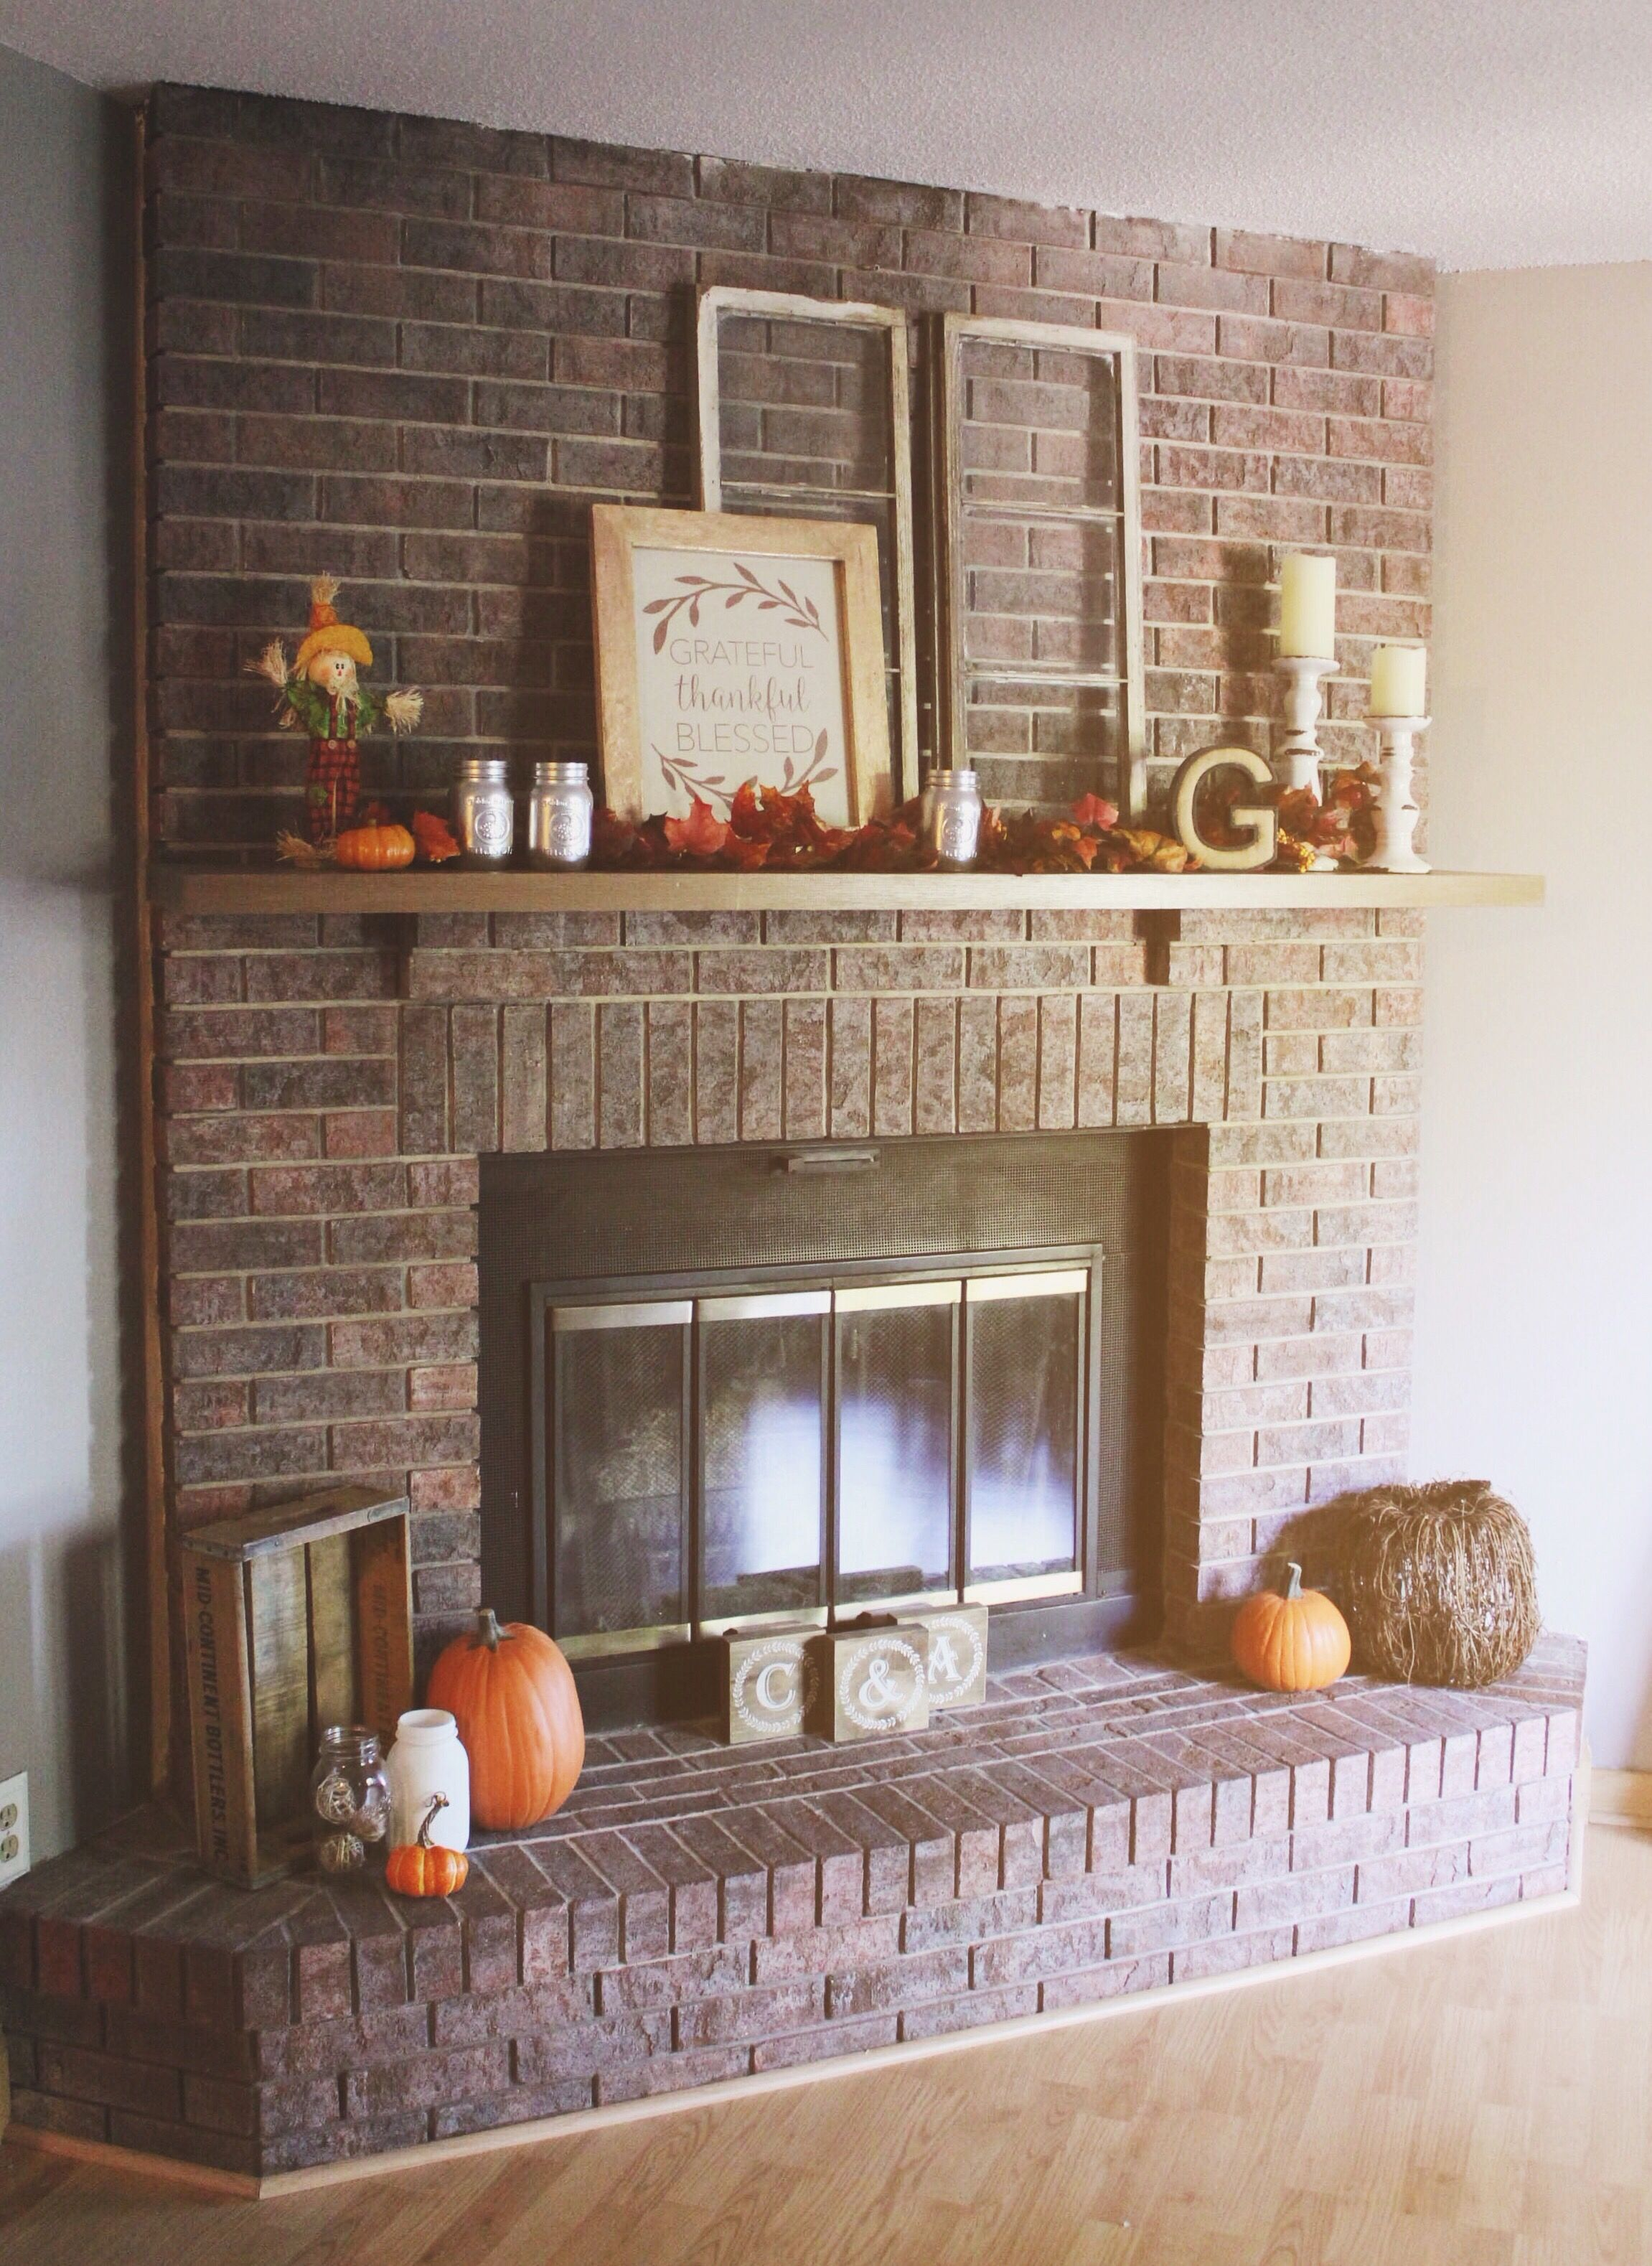 How To Decorate Fireplace Wall Our Cozy Rustic Chic Fall Red Brick Fireplace Mantel Decor